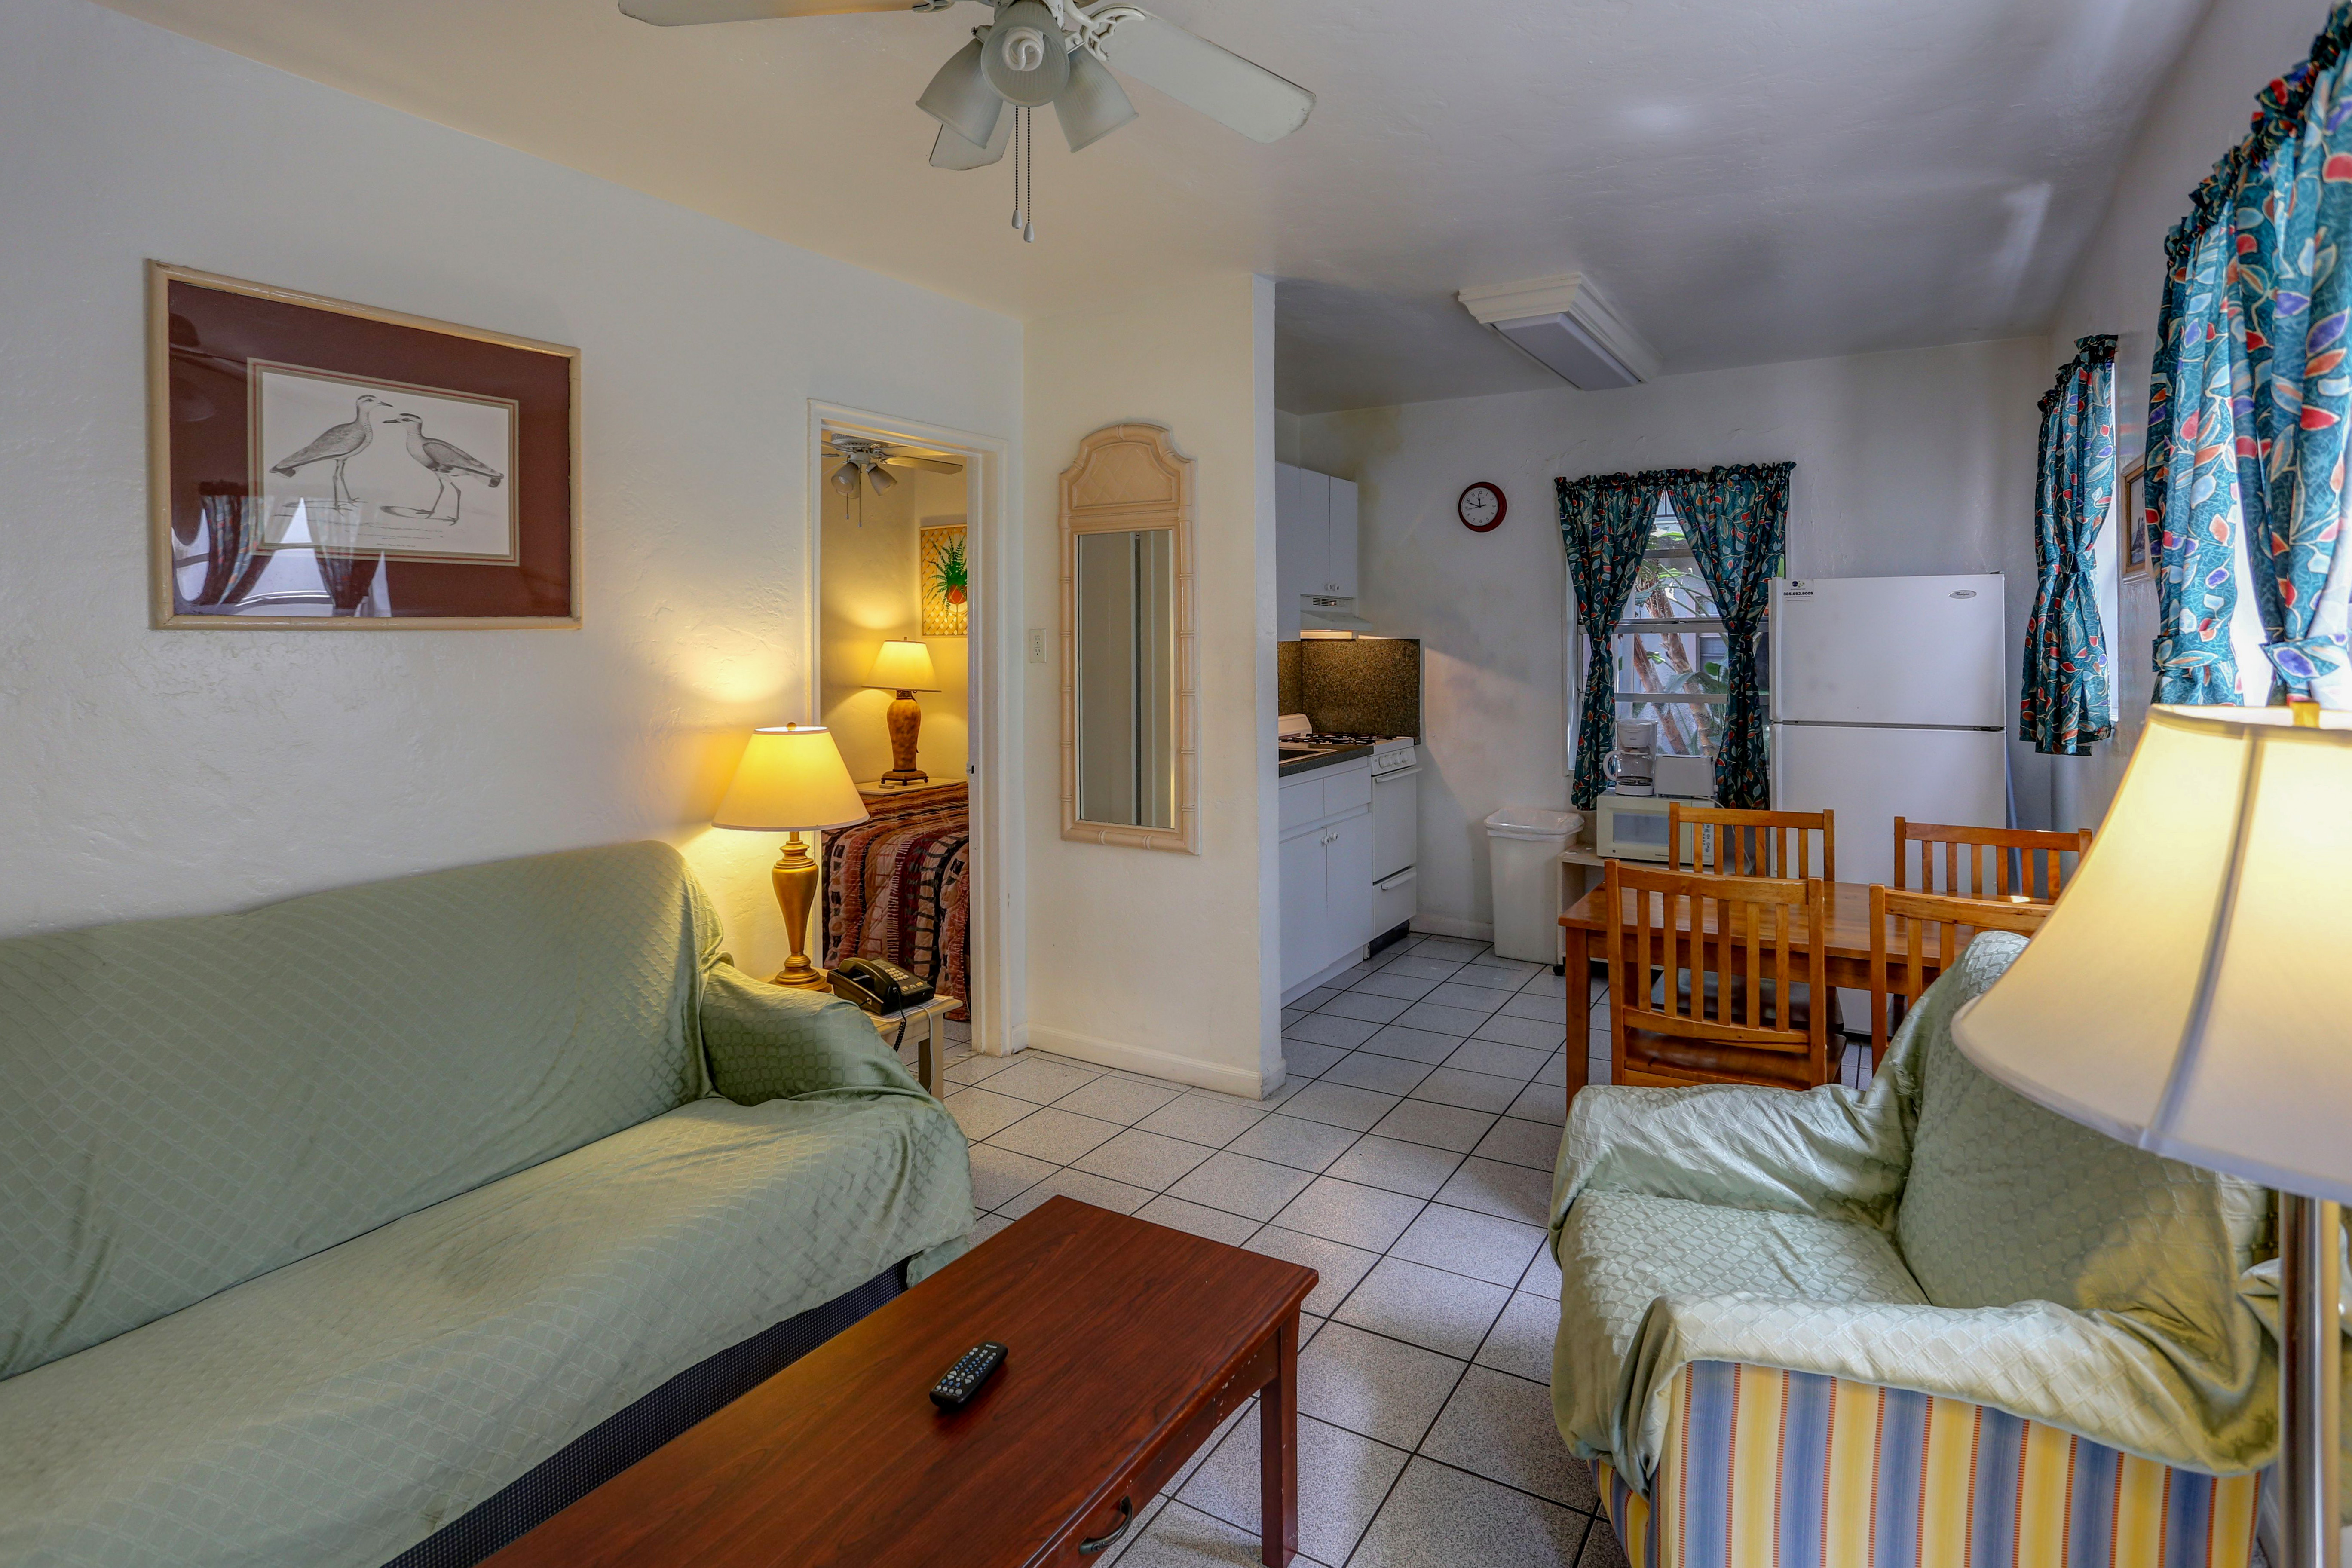 Apartment 1 bedroom richard 39 s motel for Cost to clean 2 bedroom apartment